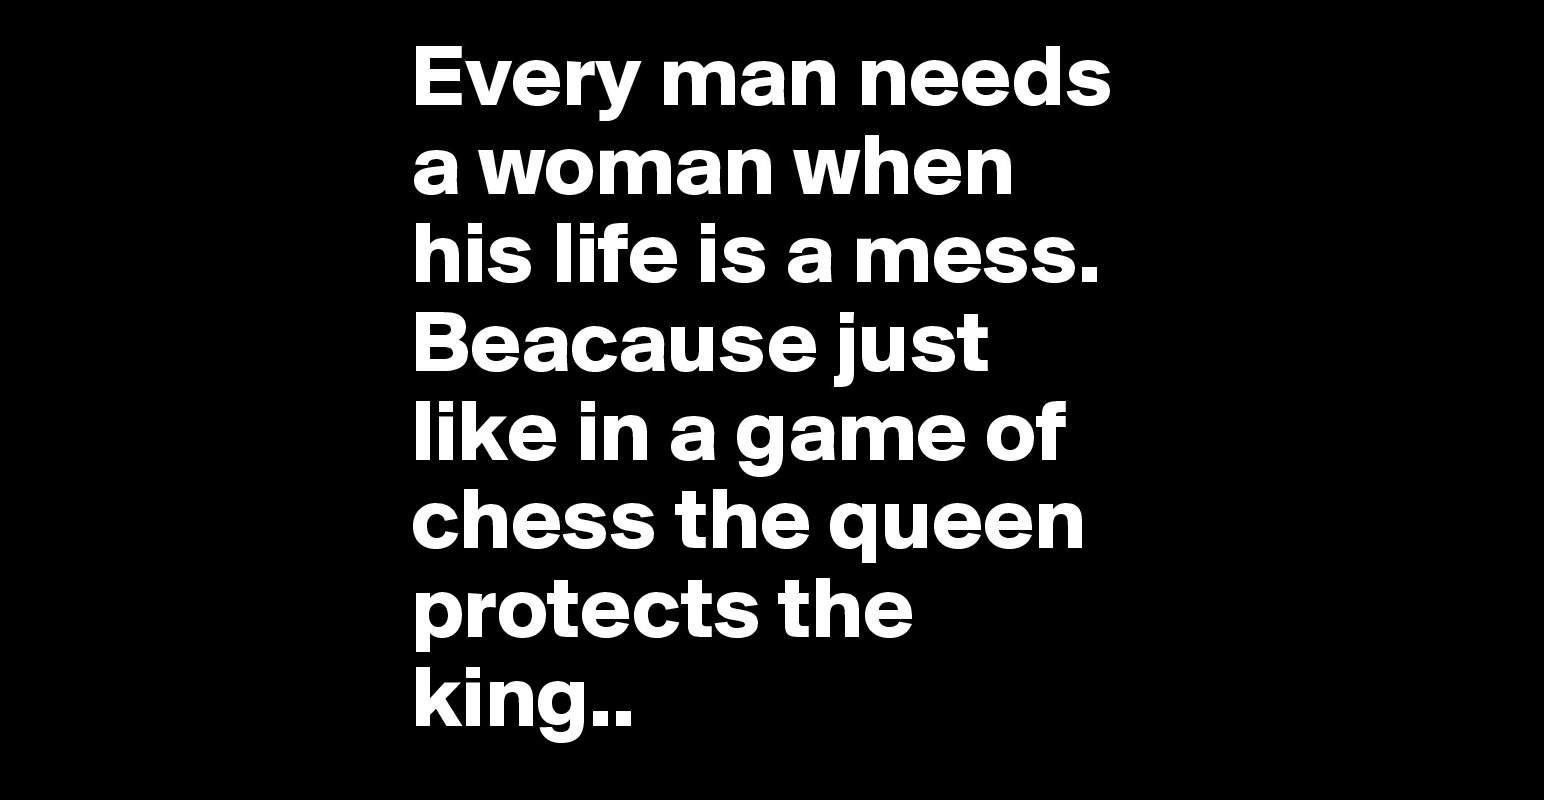 Every Woman Needs A Man Quotes: Every Man Needs A Woman When His Life Is A Mess. Beacause